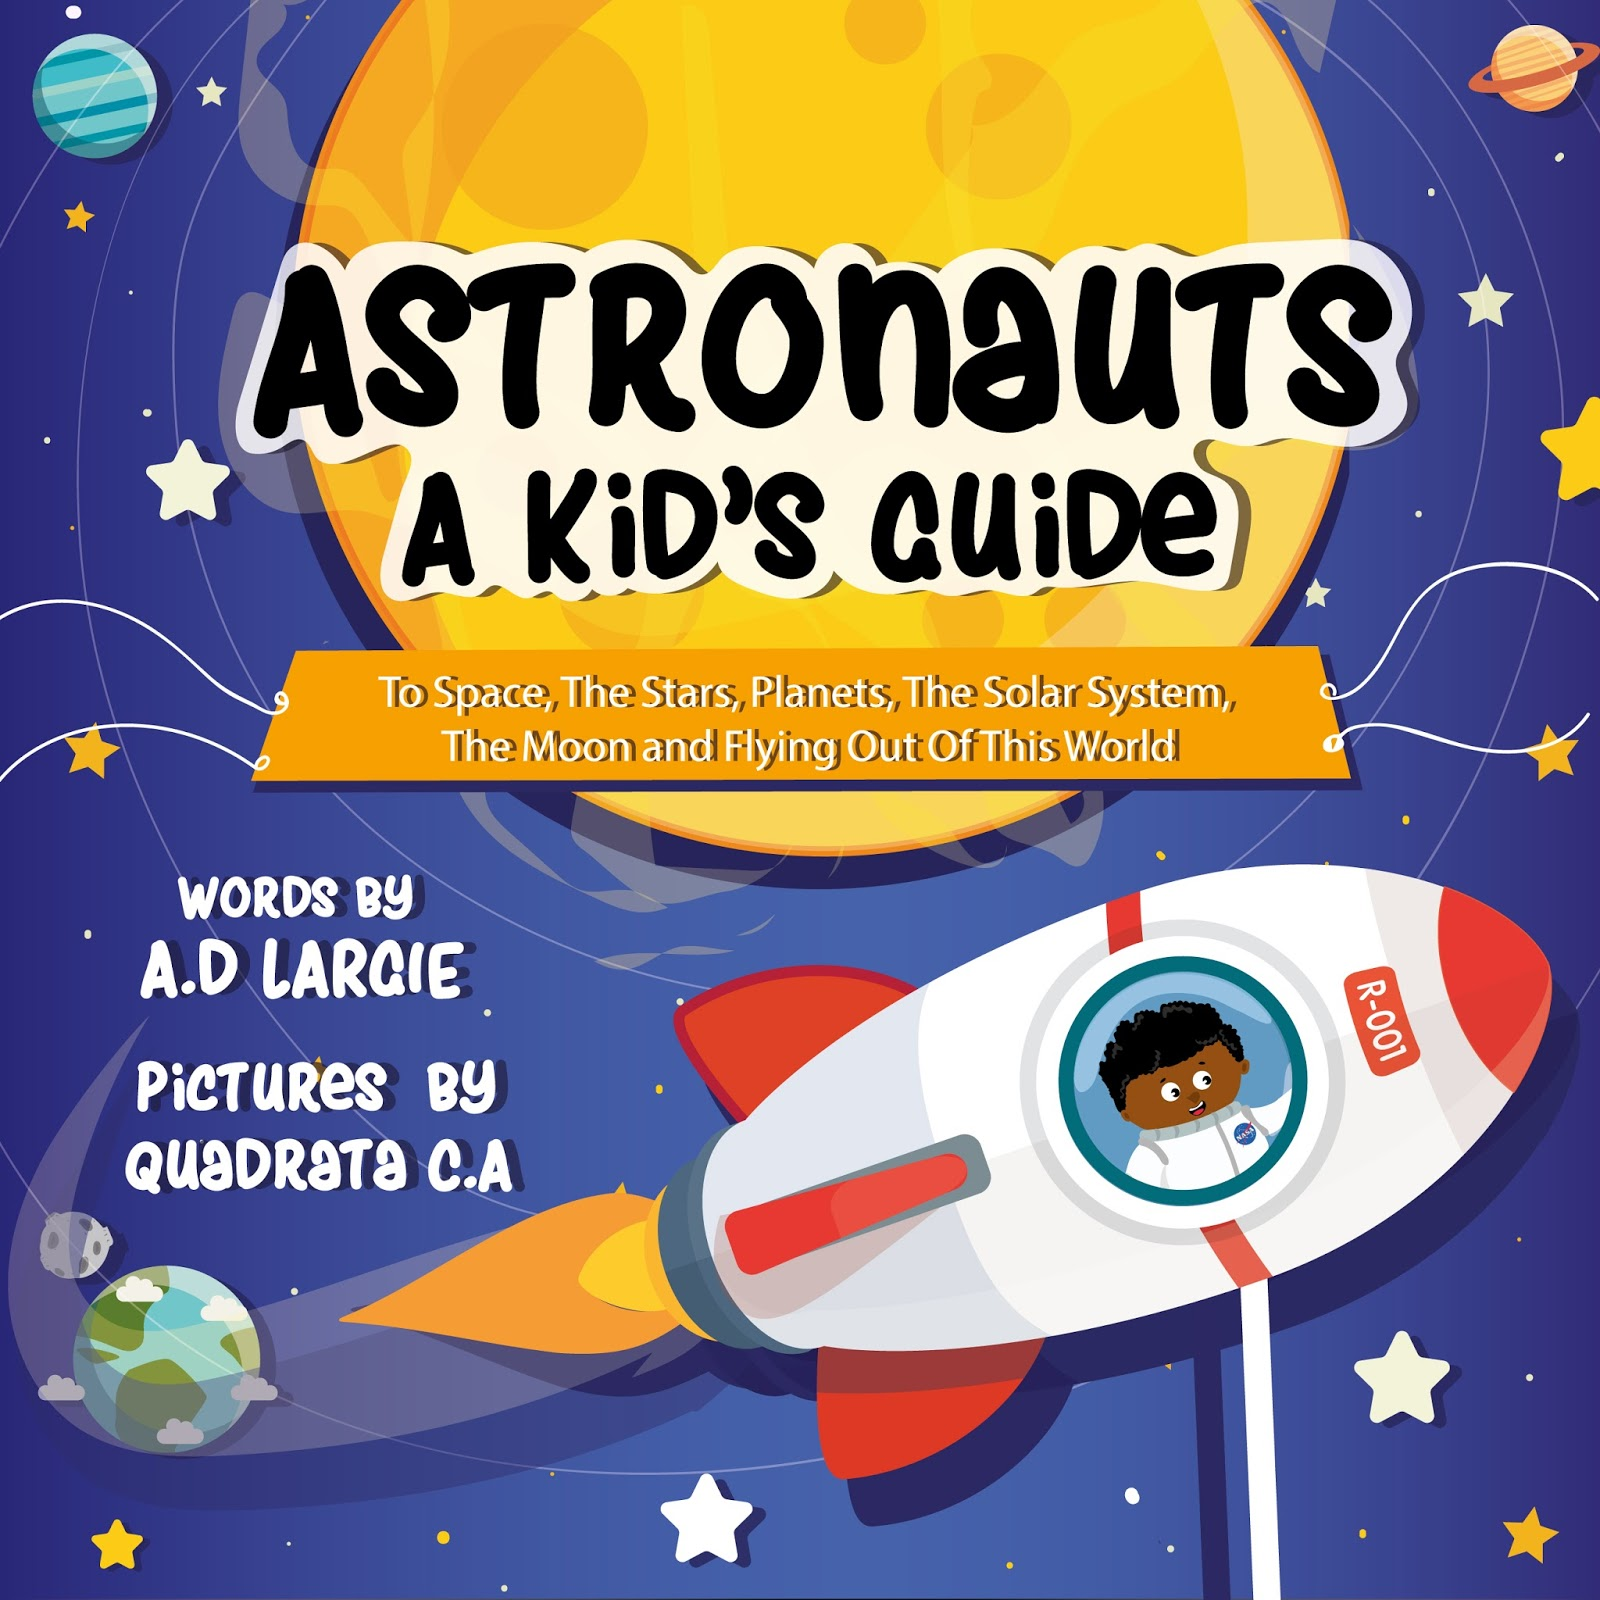 Astronauts A Kids Guide To Space The Stars Planets Solar System Moon And Flying Out Of This World